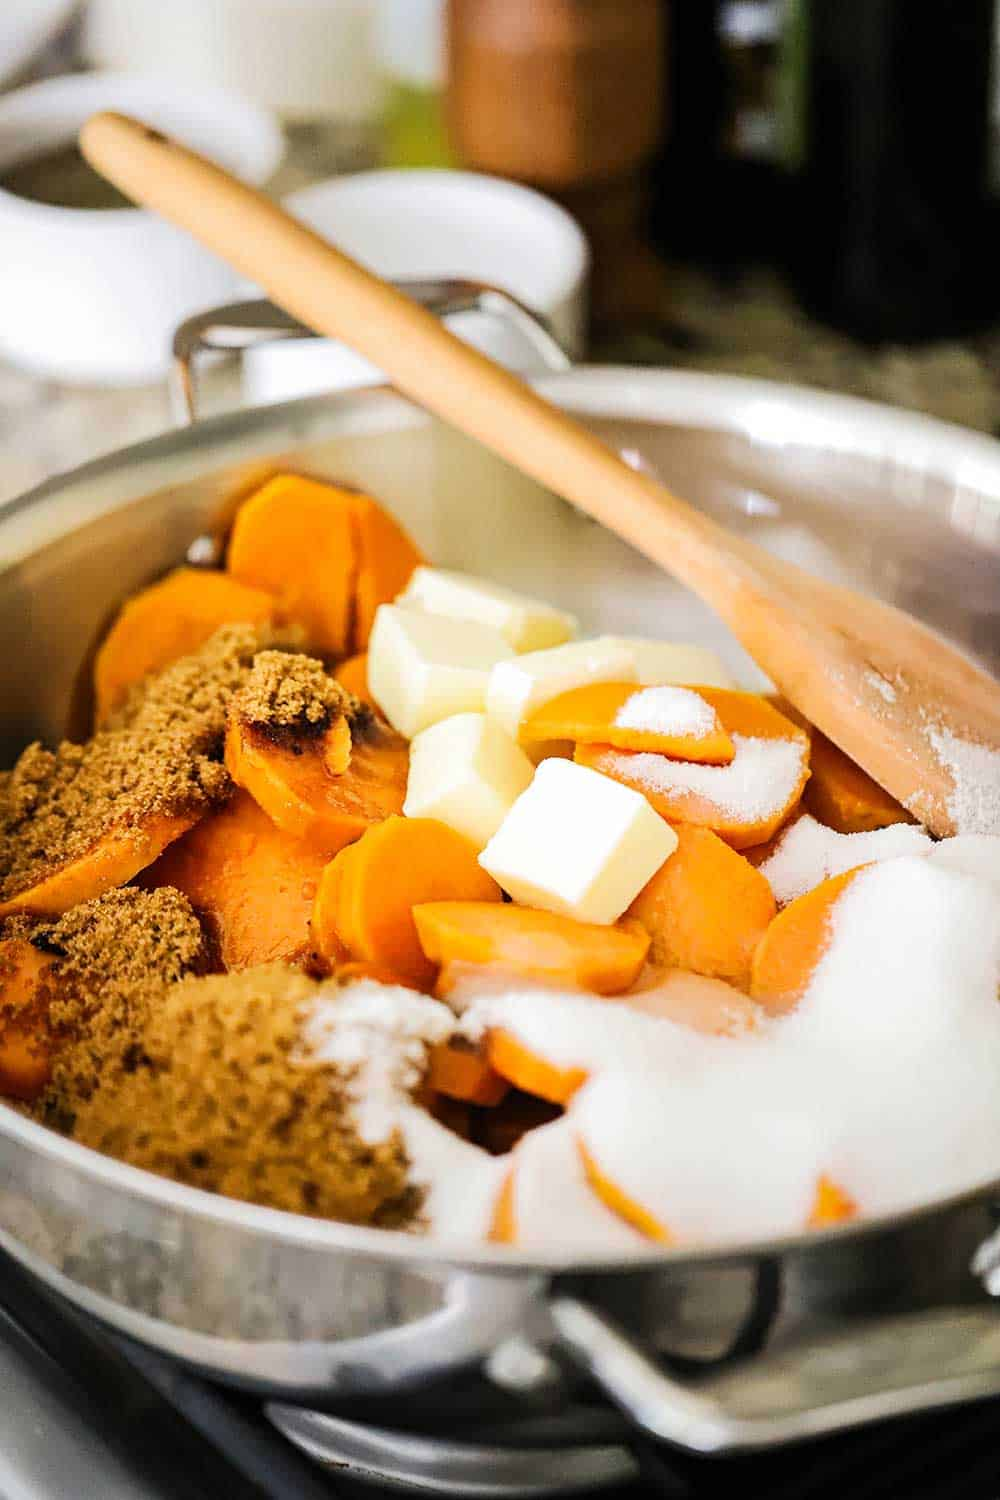 A large saucepan filled with sliced sweet potatoes, brown and white sugar, and sliced pieces of butter.